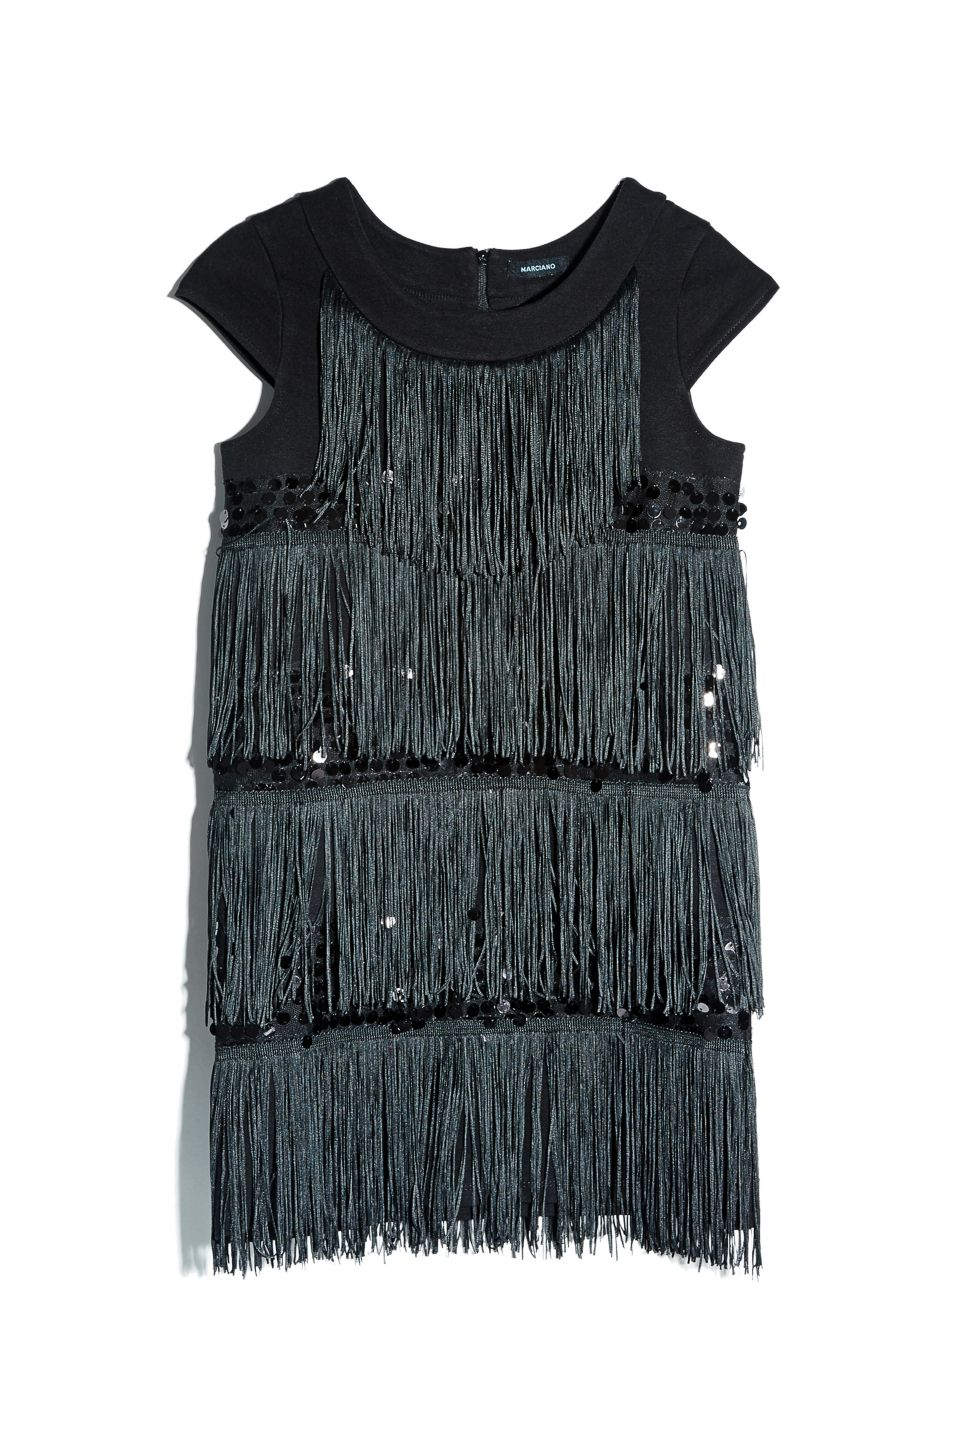 Fringe Ponte & Pailette Dress | GUESS by Marciano Girls #GUESSKids #MarcianoGirls